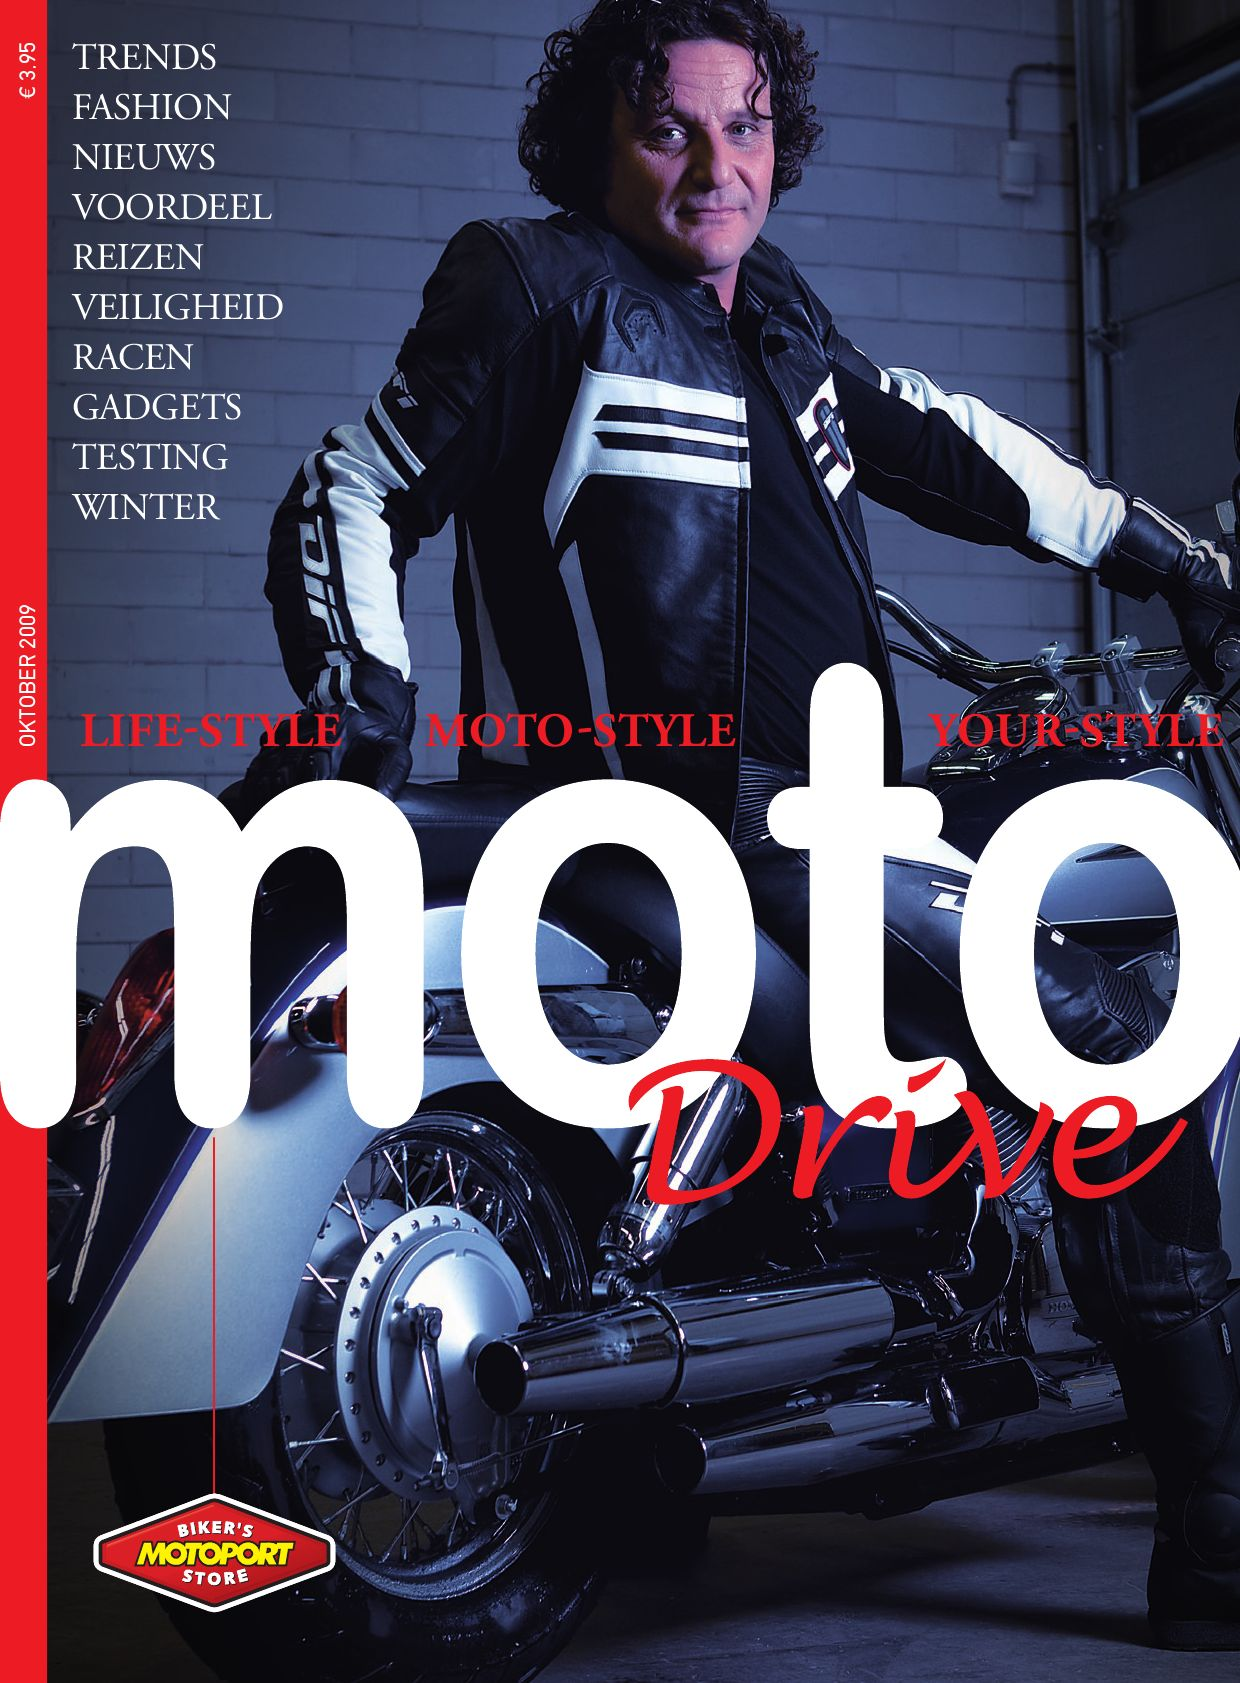 motodrive 3 by xtra digital agency